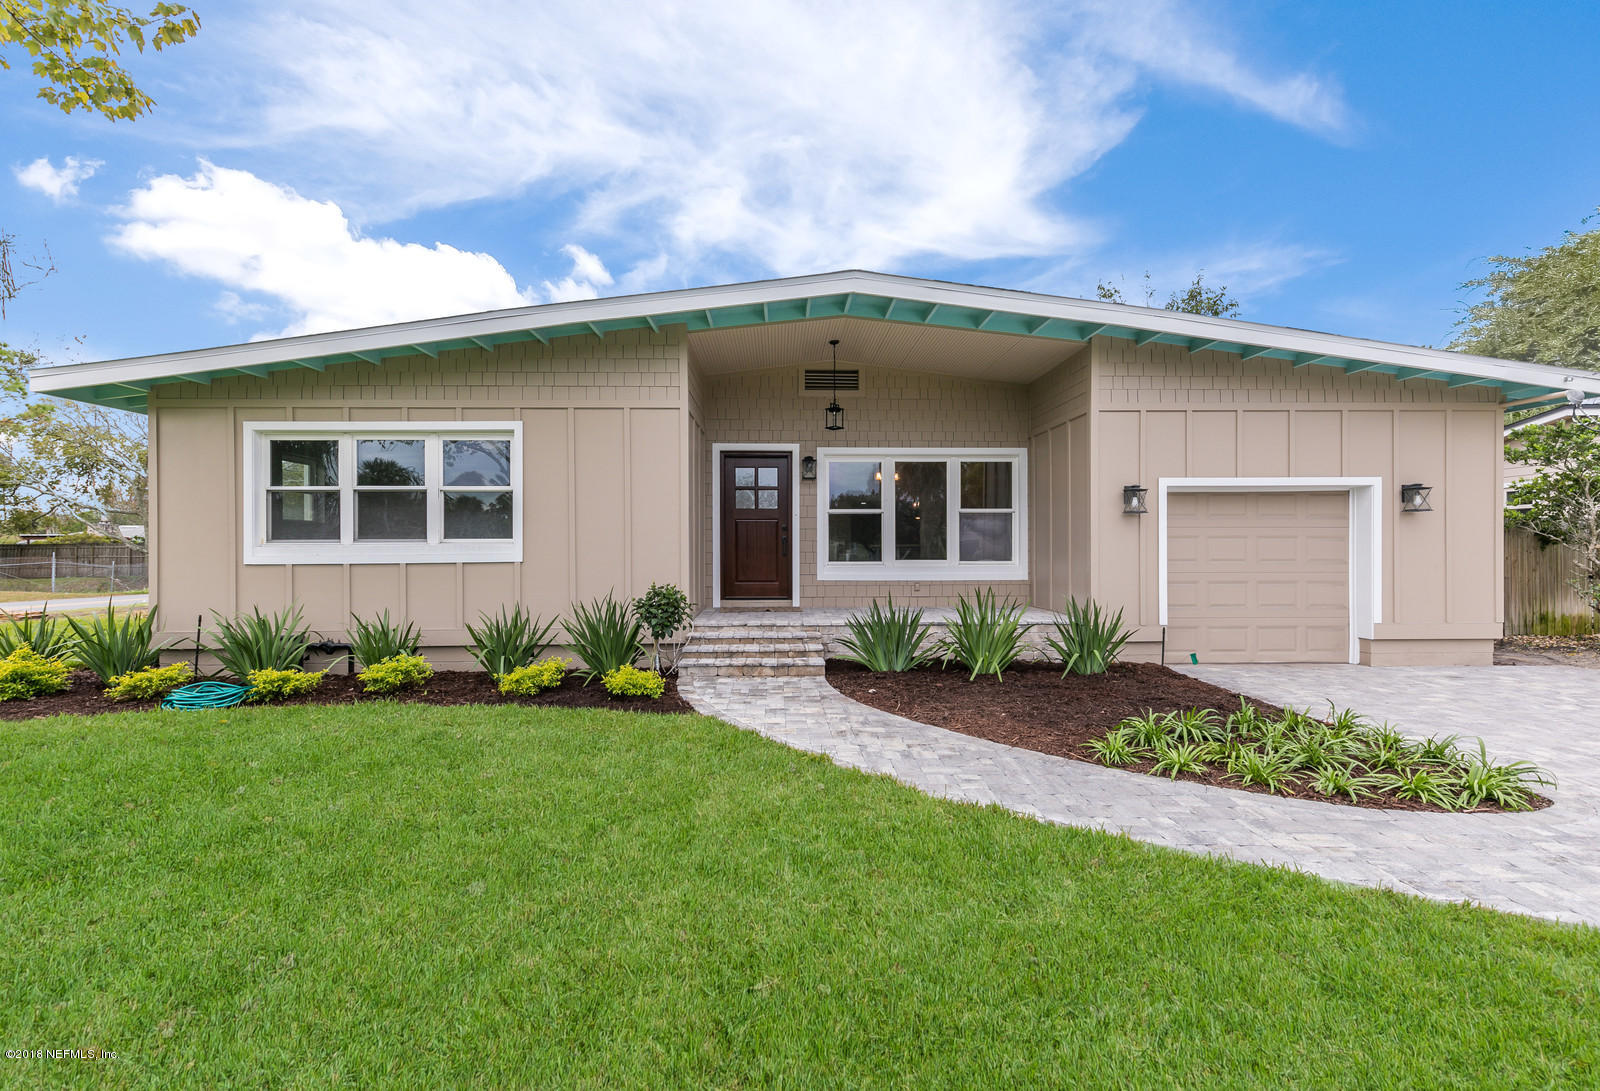 1602 7TH, JACKSONVILLE BEACH, FLORIDA 32250, 4 Bedrooms Bedrooms, ,2 BathroomsBathrooms,Residential - single family,For sale,7TH,966337